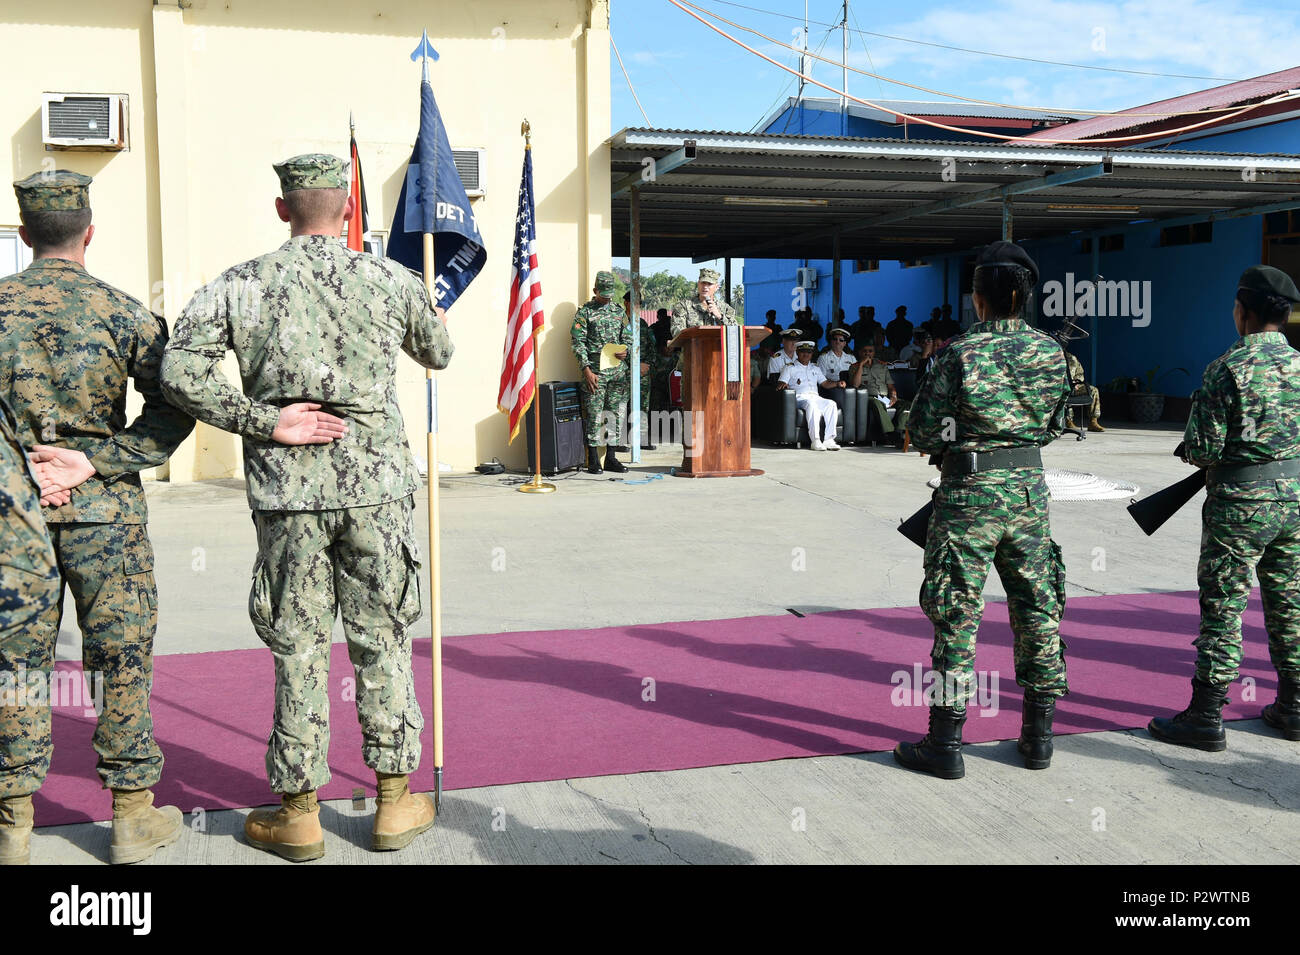 160801-N-DH124-064 DILI, Timor-Leste (Aug. 1, 2016) - Capt. Jeffrey Killian, commodore, 30th Naval Construction Regiment, speaks to service members from the U.S. Navy, U.S. Marine Corps and the Forsa Defesa Timor-Leste (F-FDTL) during the opening ceremony for Cooperation Afloat Readiness and Training (CARAT) Timor-Leste 2016 at the Port Hera Naval Base in Dili, Timor Leste. CARAT is a series of bilateral military exercises between the U.S. Navy and the armed forces of Bangladesh, Brunei, Timor-Leste, Indonesia, Malaysia, the Philippines, Singapore, and Cambodia that takes place annually.  (U.S Stock Photo